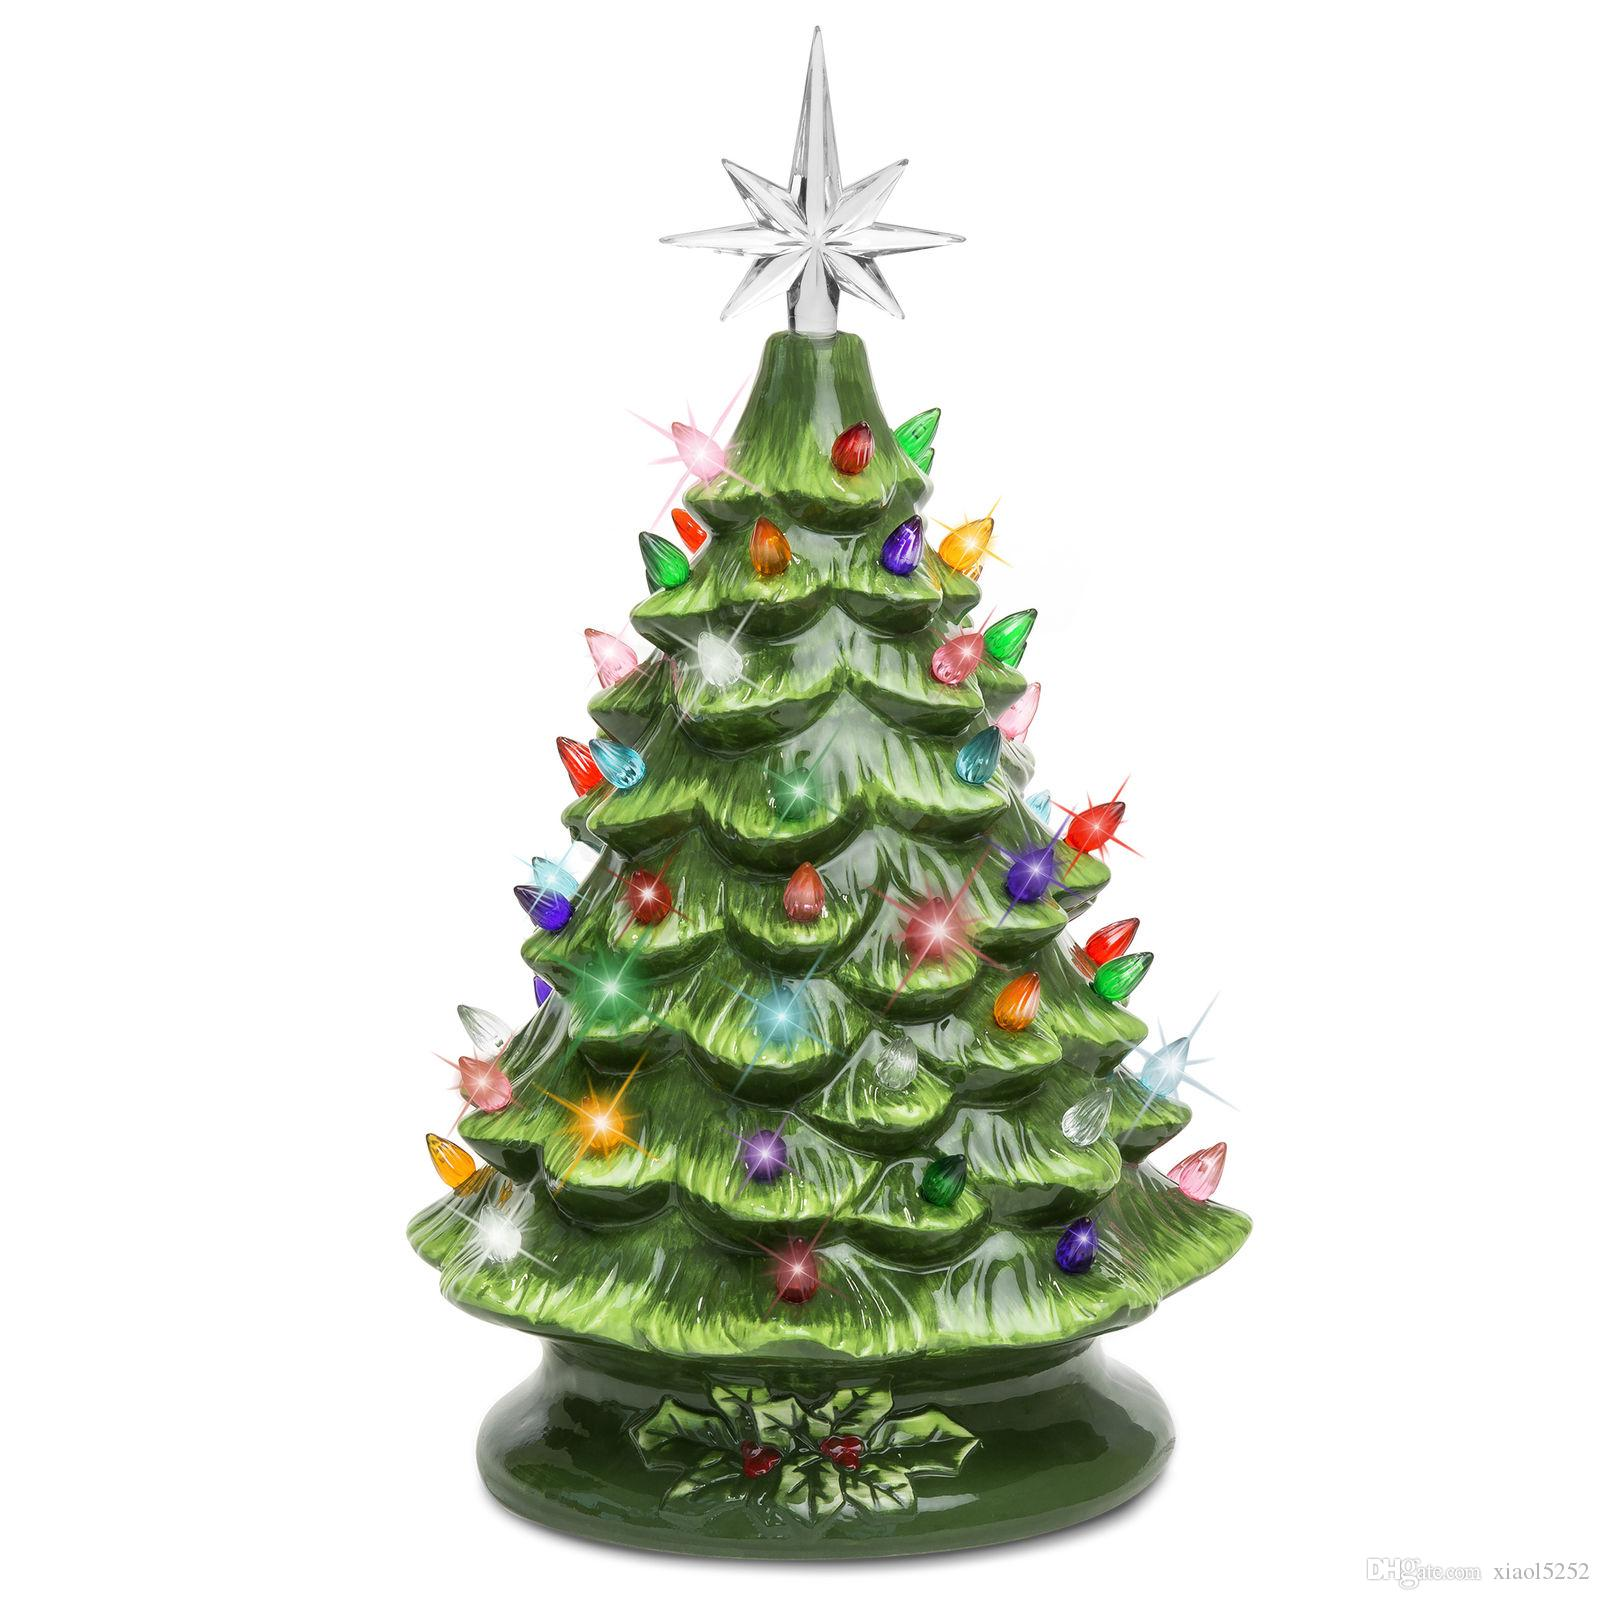 bcp 15in pre lit ceramic tabletop christmas tree w 50 lights green holiday decorating holiday decoration from xiaol5252 3016 dhgatecom